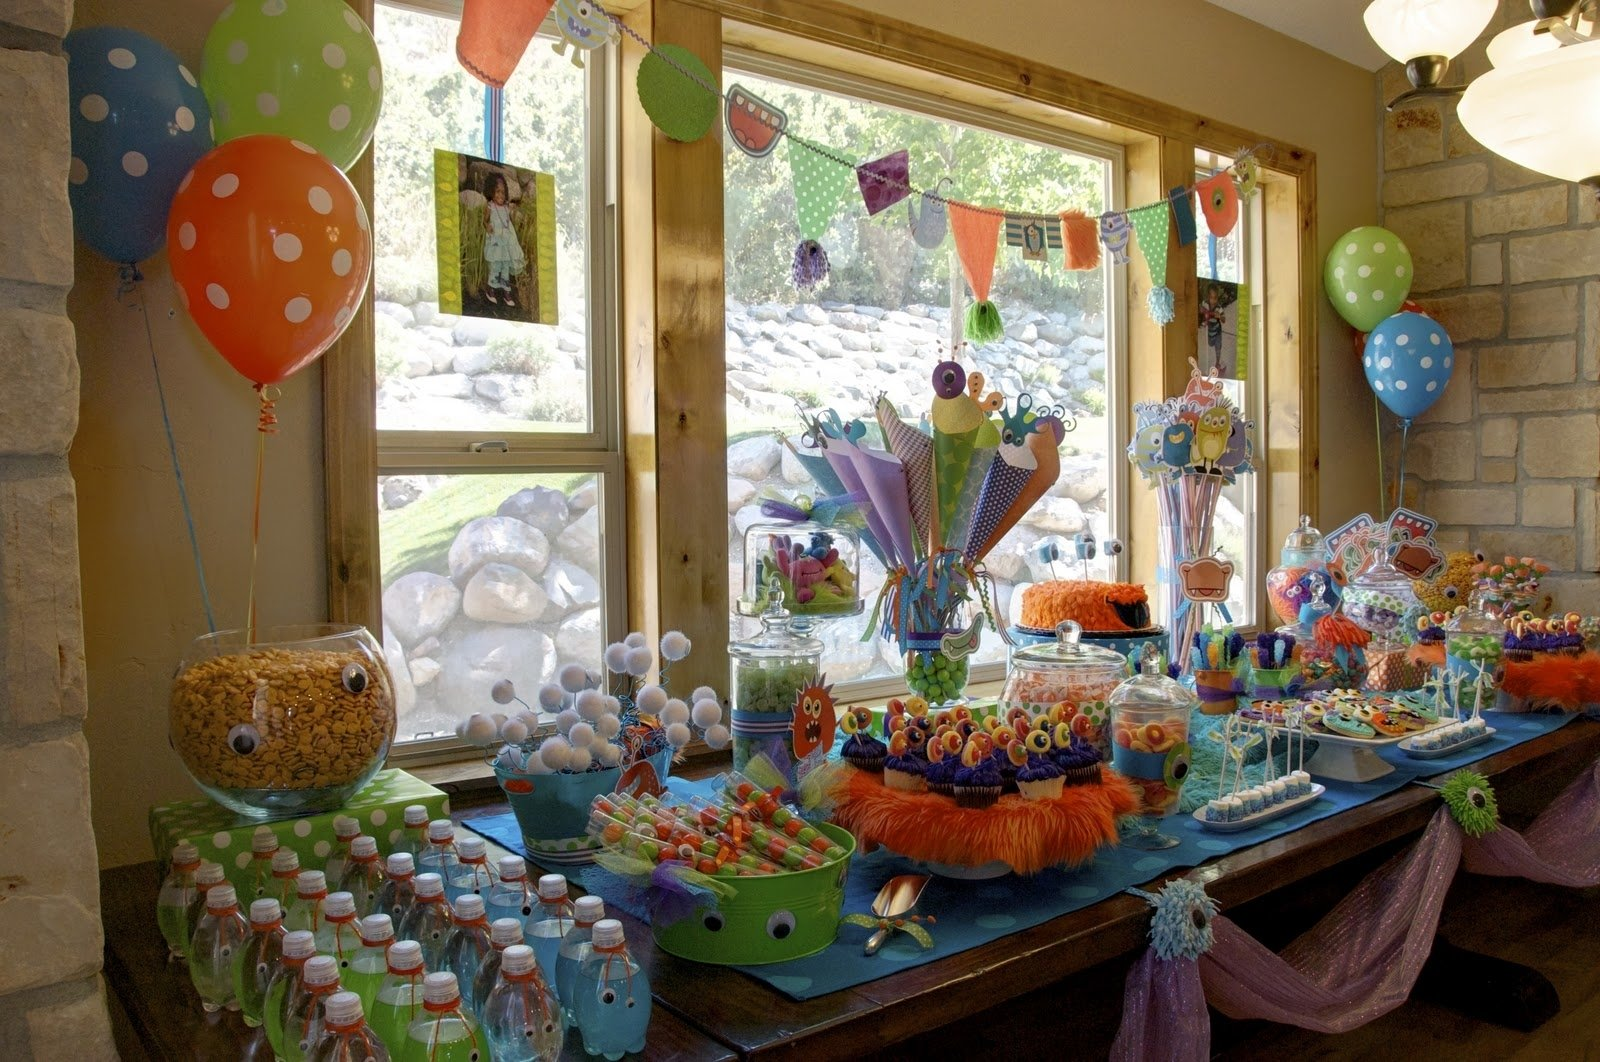 10 Best 16 Year Old Boy Birthday Party Ideas My Friends Is In The Winter